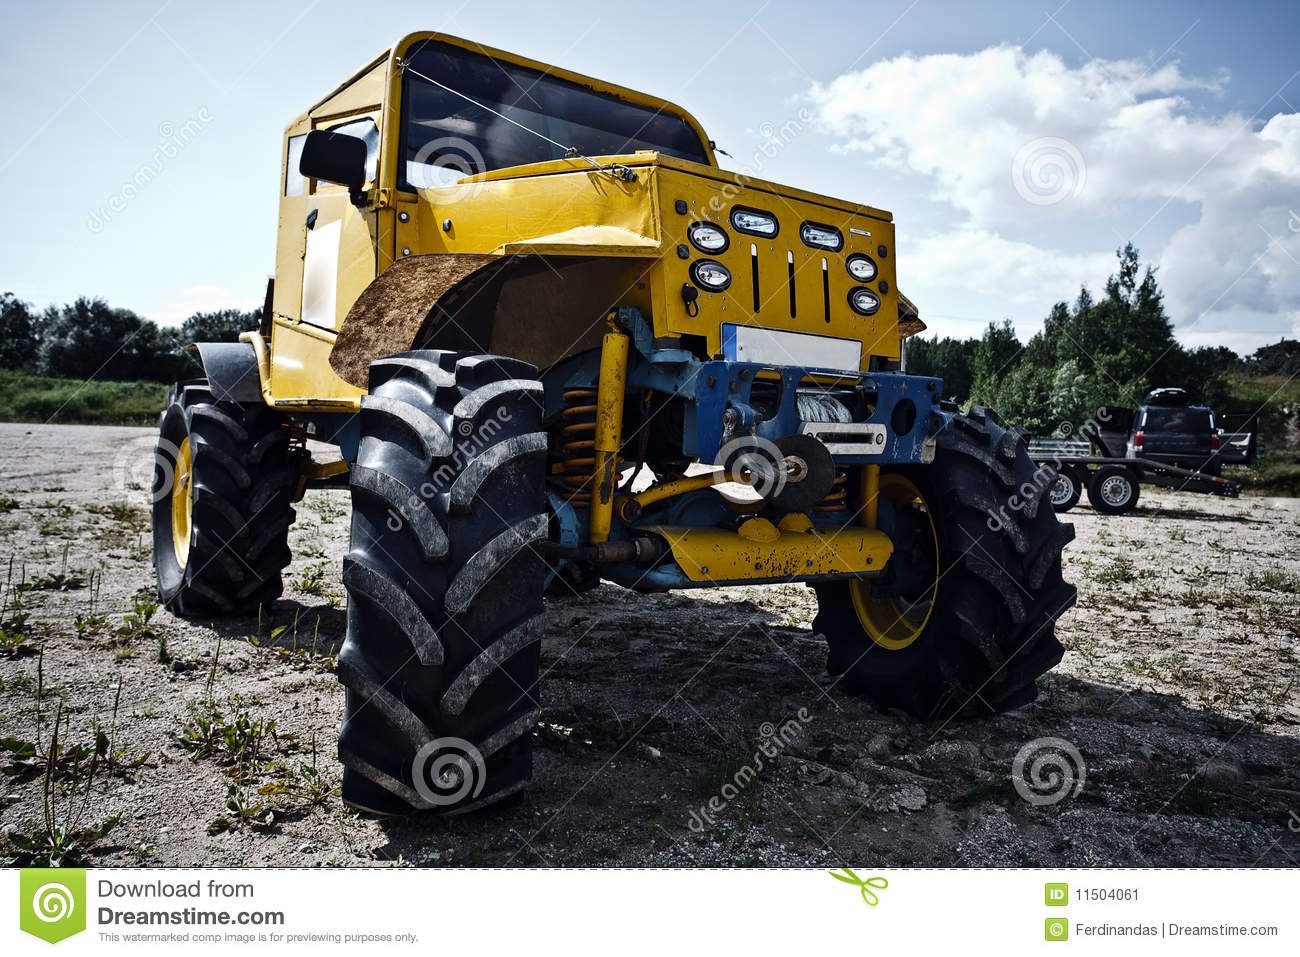 Custom Built Truck Before Off Road Competition Stock Image